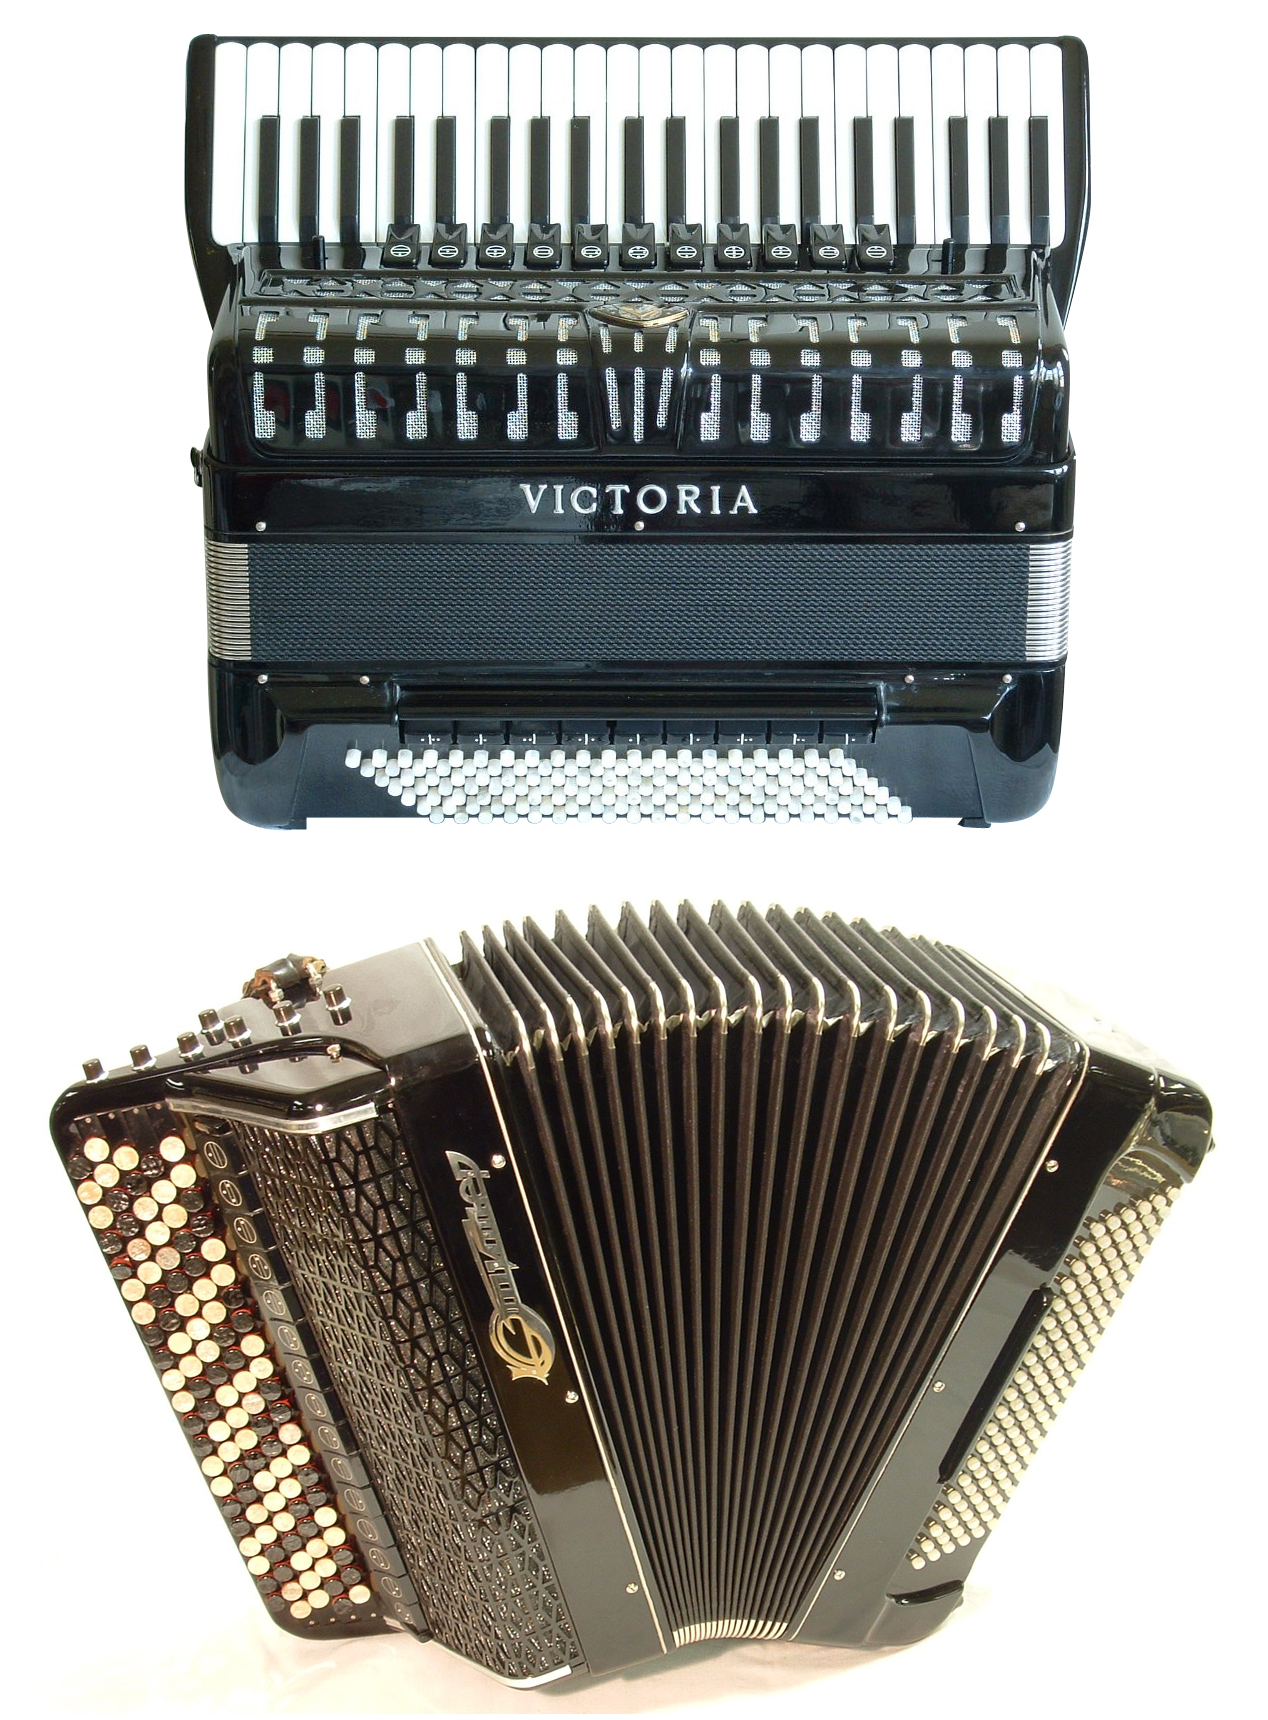 https://upload.wikimedia.org/wikipedia/commons/e/e9/A_convertor_free-bass_piano-accordion_and_a_Russian_bayan.jpg